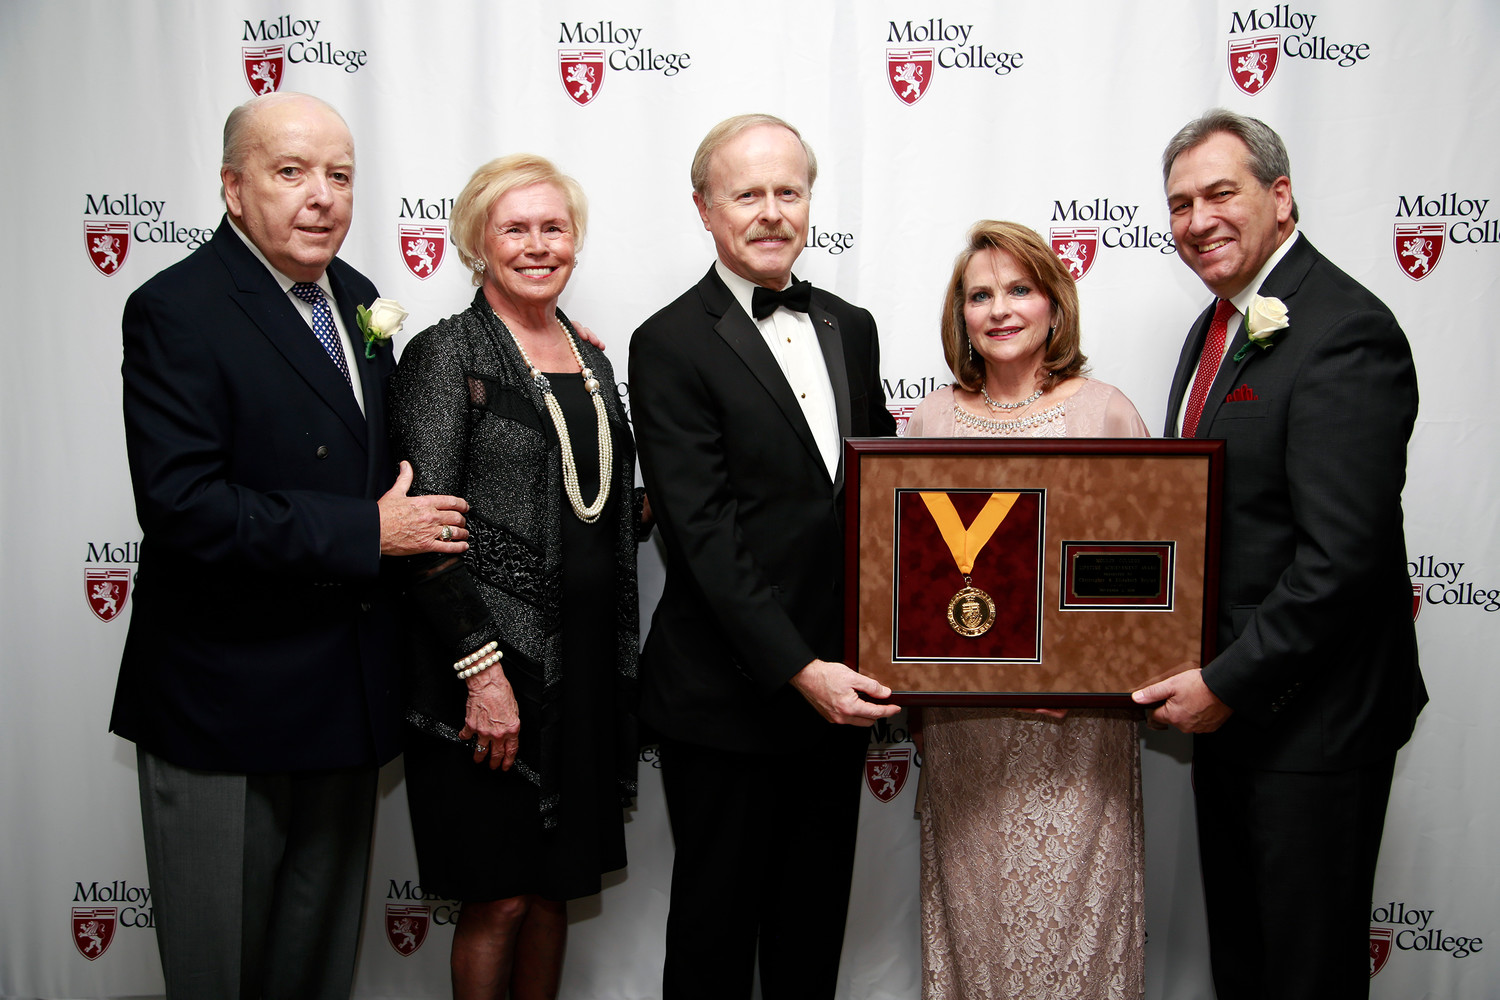 Paul Durman, from left, Molloy College Chairman Emeritus and Sherry Durman joined Christopher and Elizabeth Boylan, recipients of the Lifetime Achievement Award, and Molloy College President Drew Bogner.